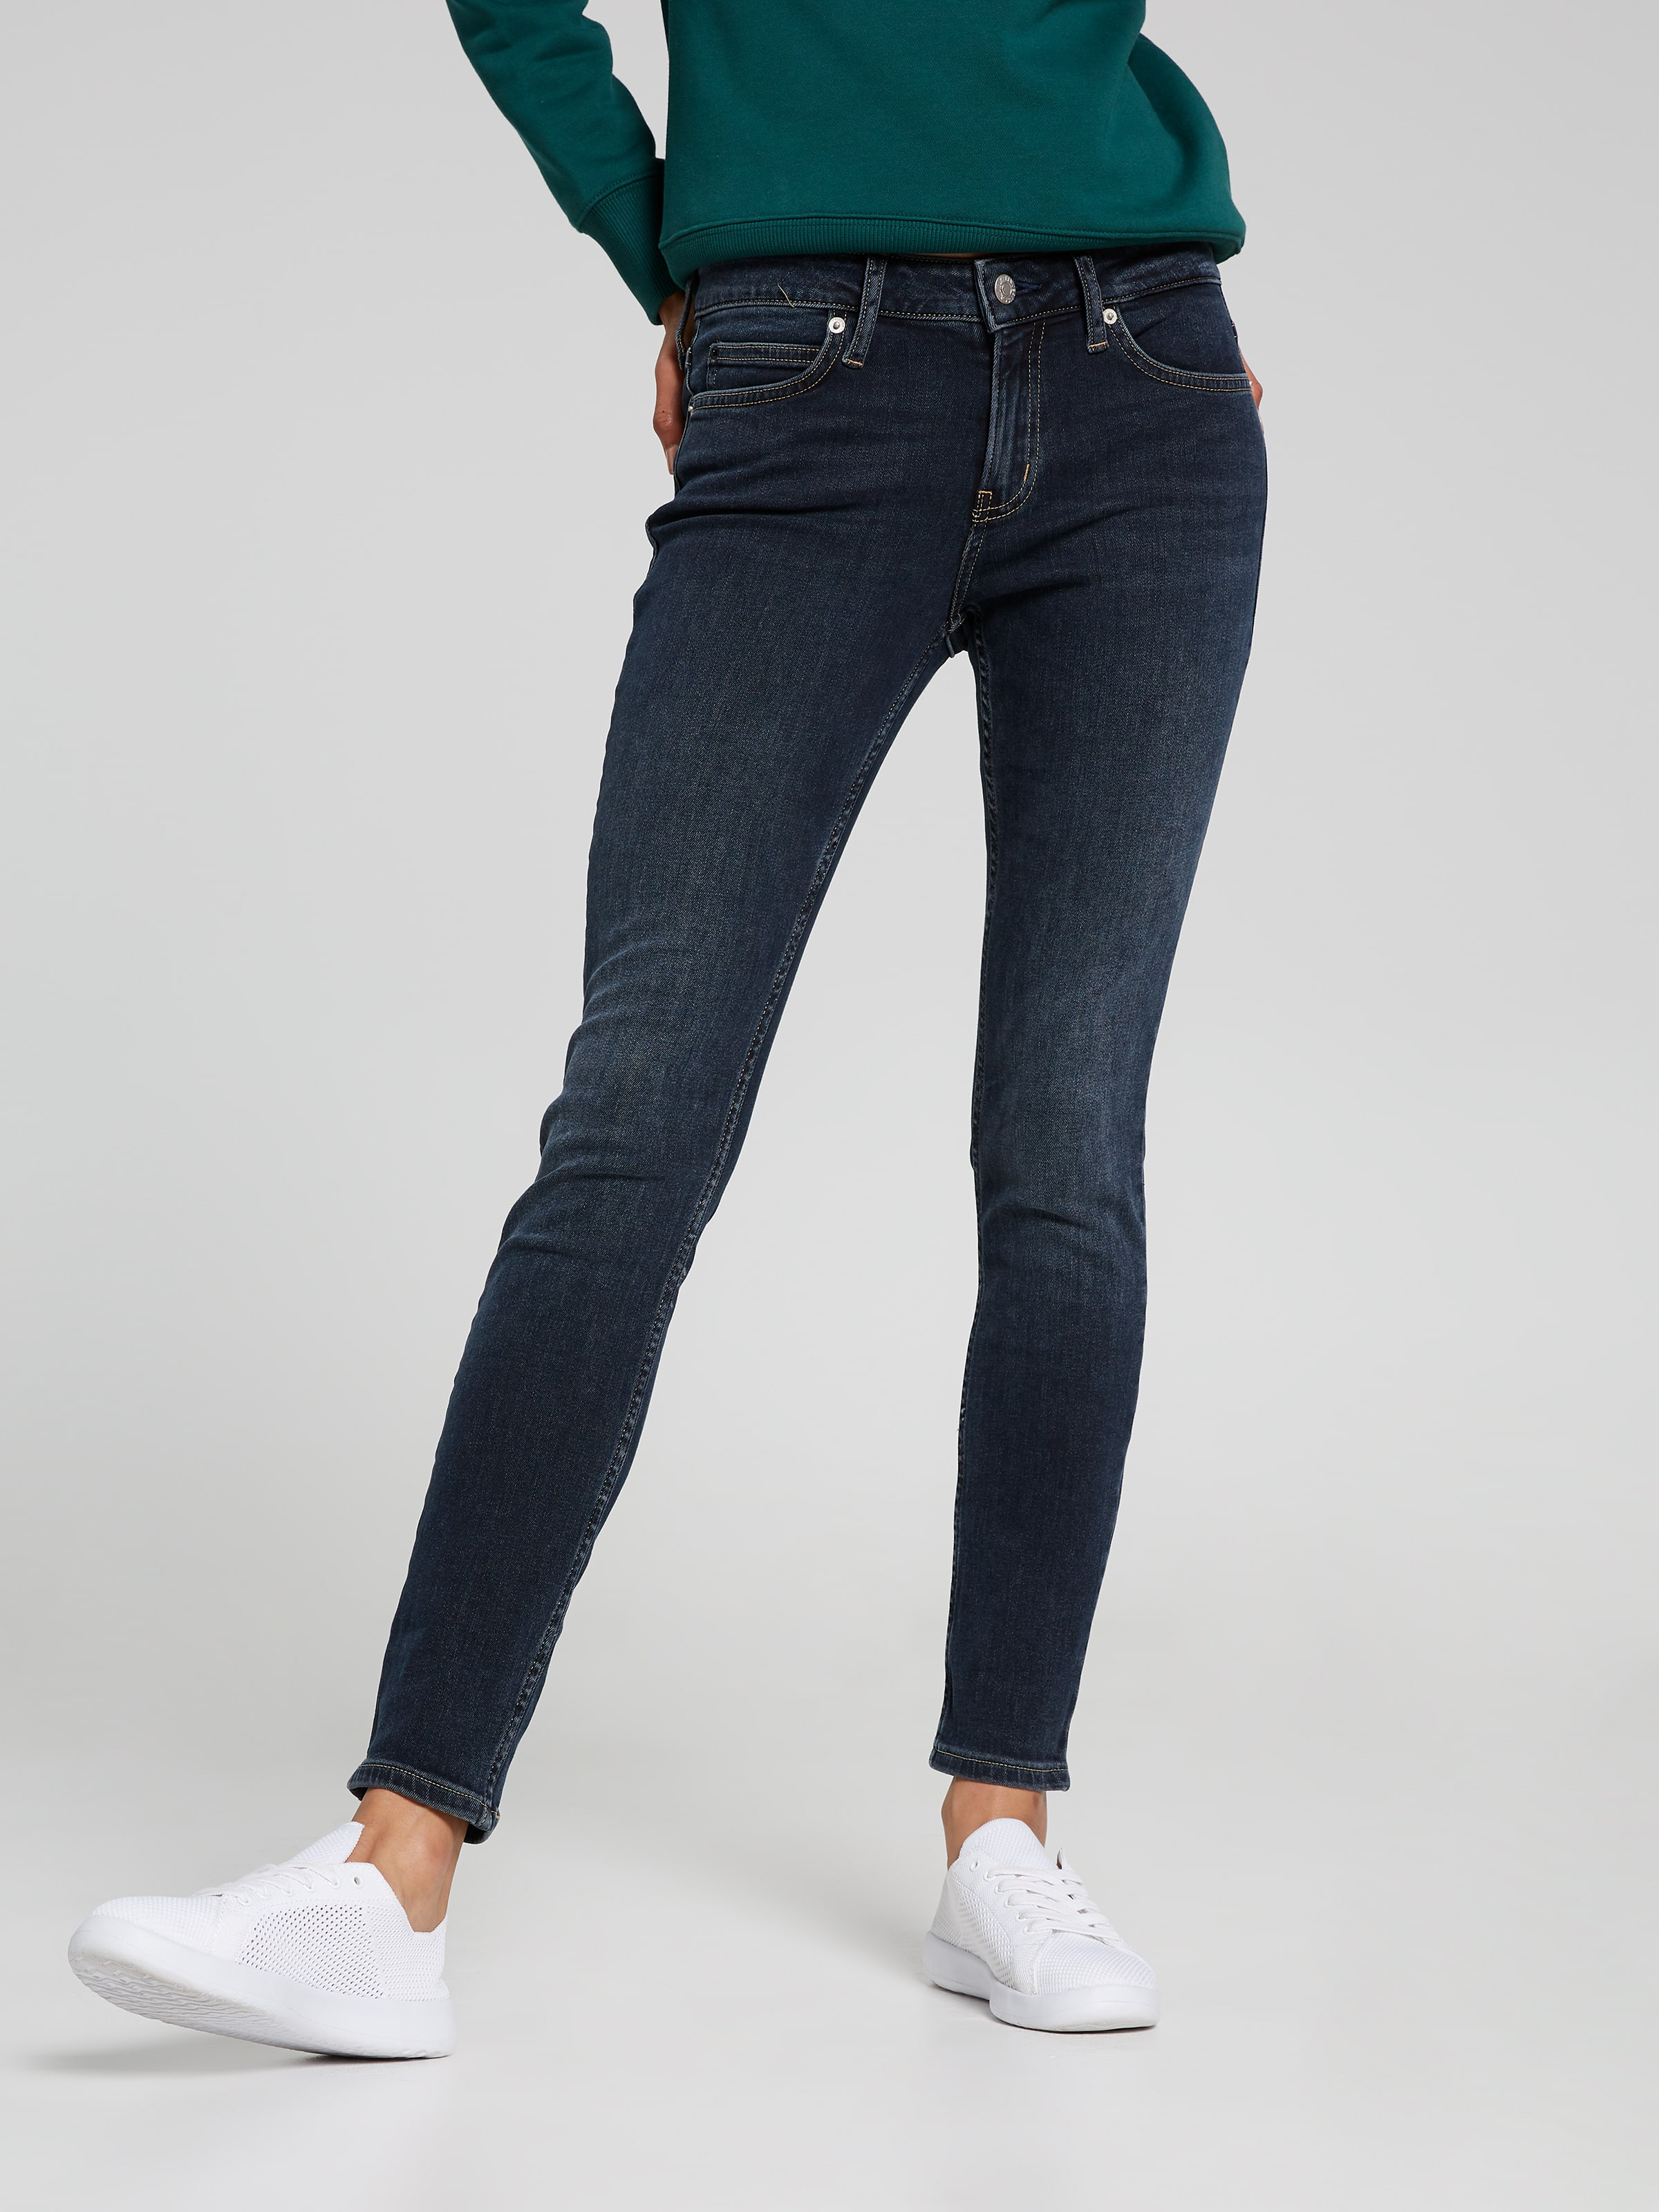 BUY Just Jeans Calvin Klein Mid Rise Super Skinny In Portland Blue ... d512de5e360